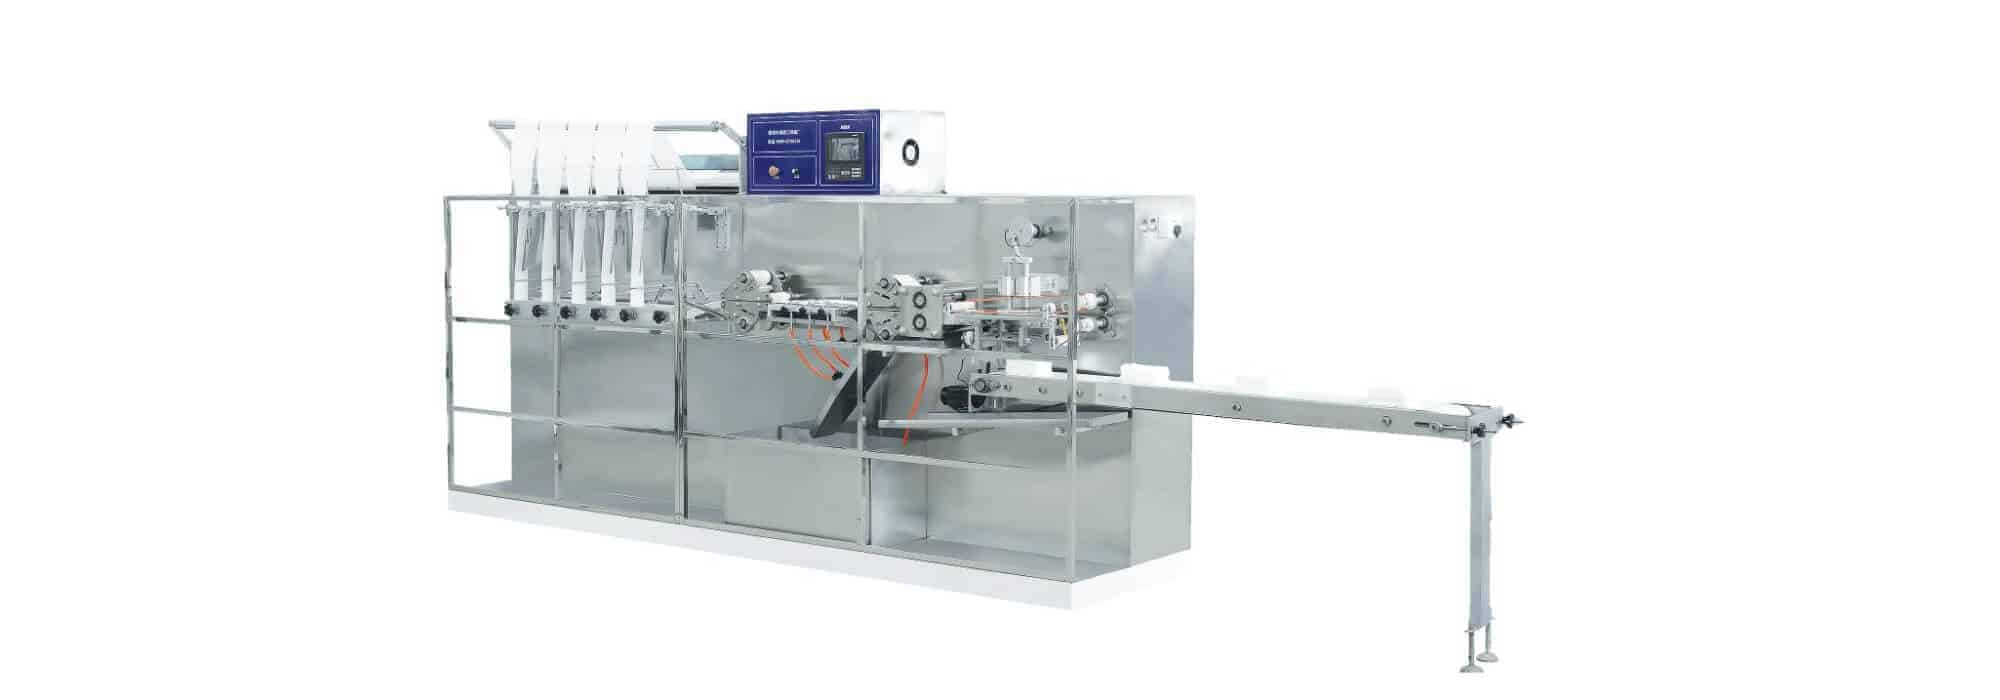 DH 6 wet wipes converting machine - DH-6 wet wipes converting machine (30-120pcs/pack)